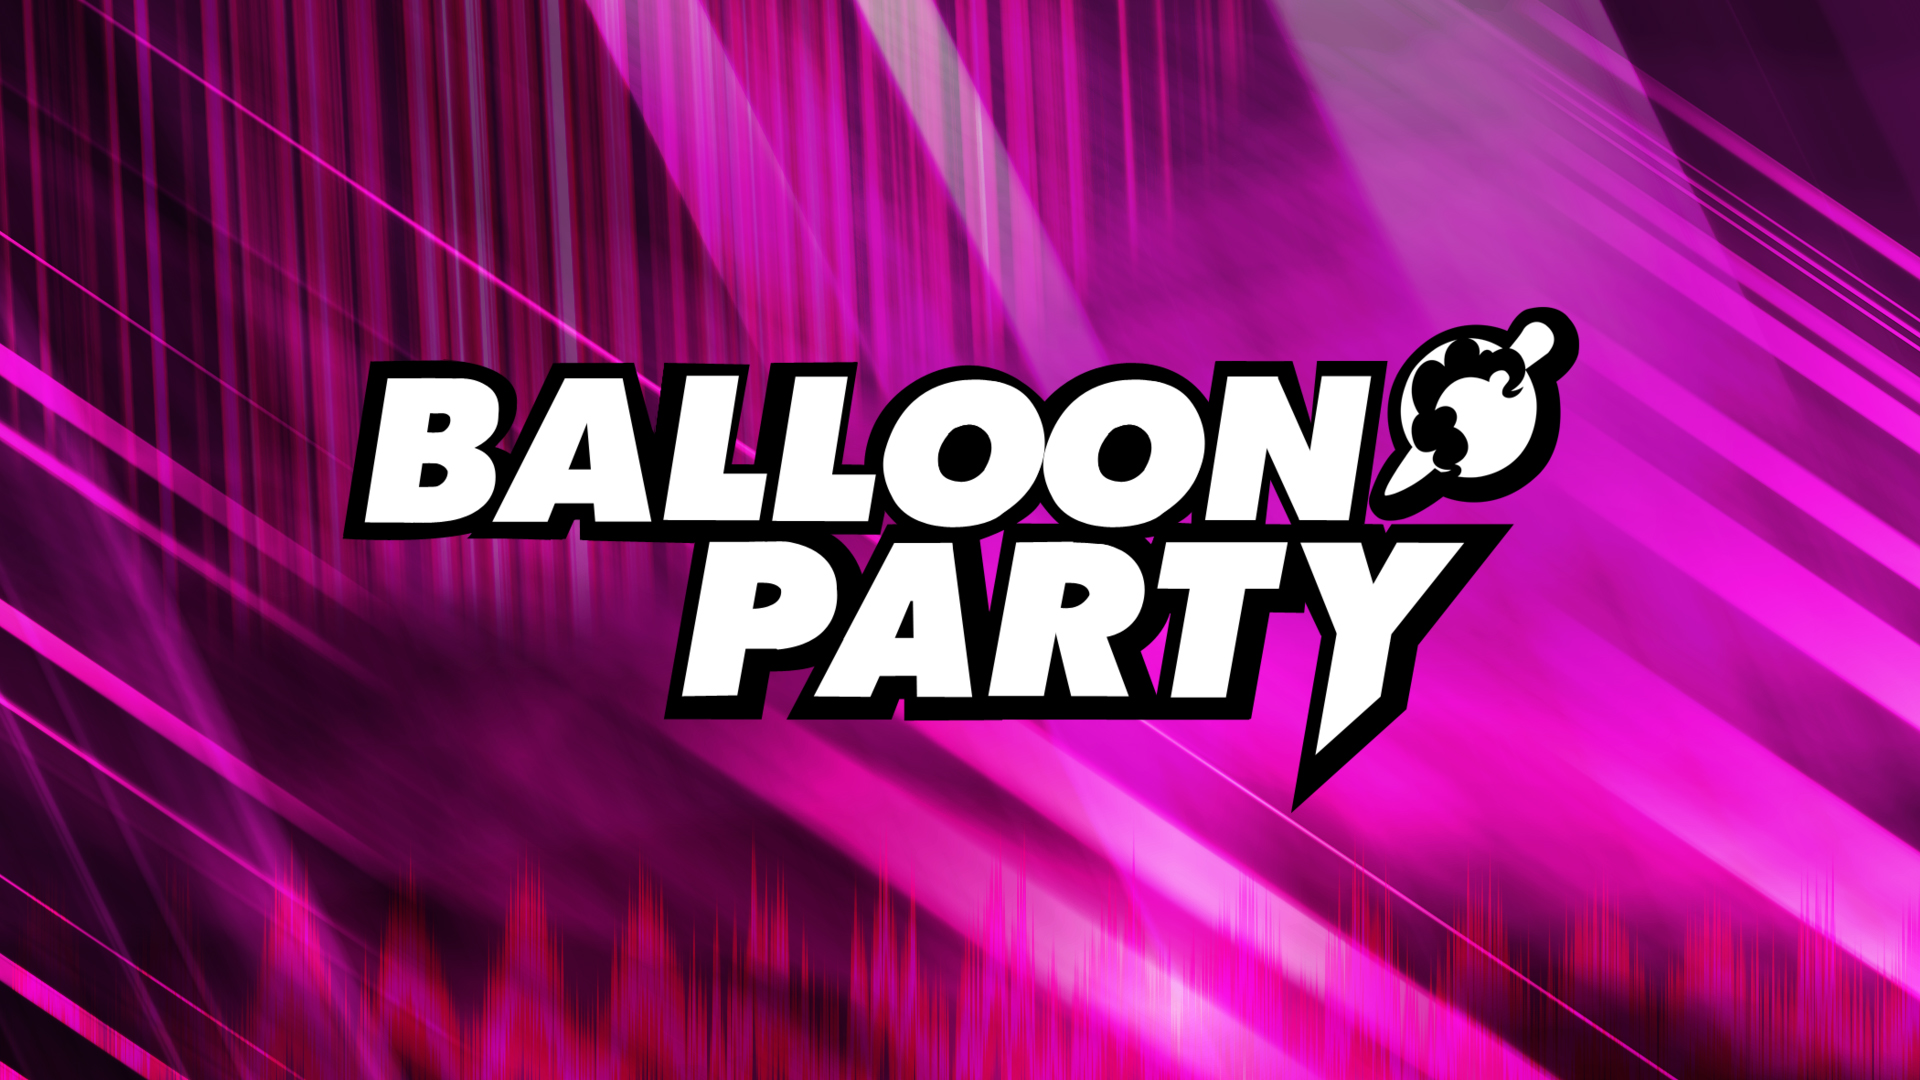 Balloon Party Wallpaper by WMill